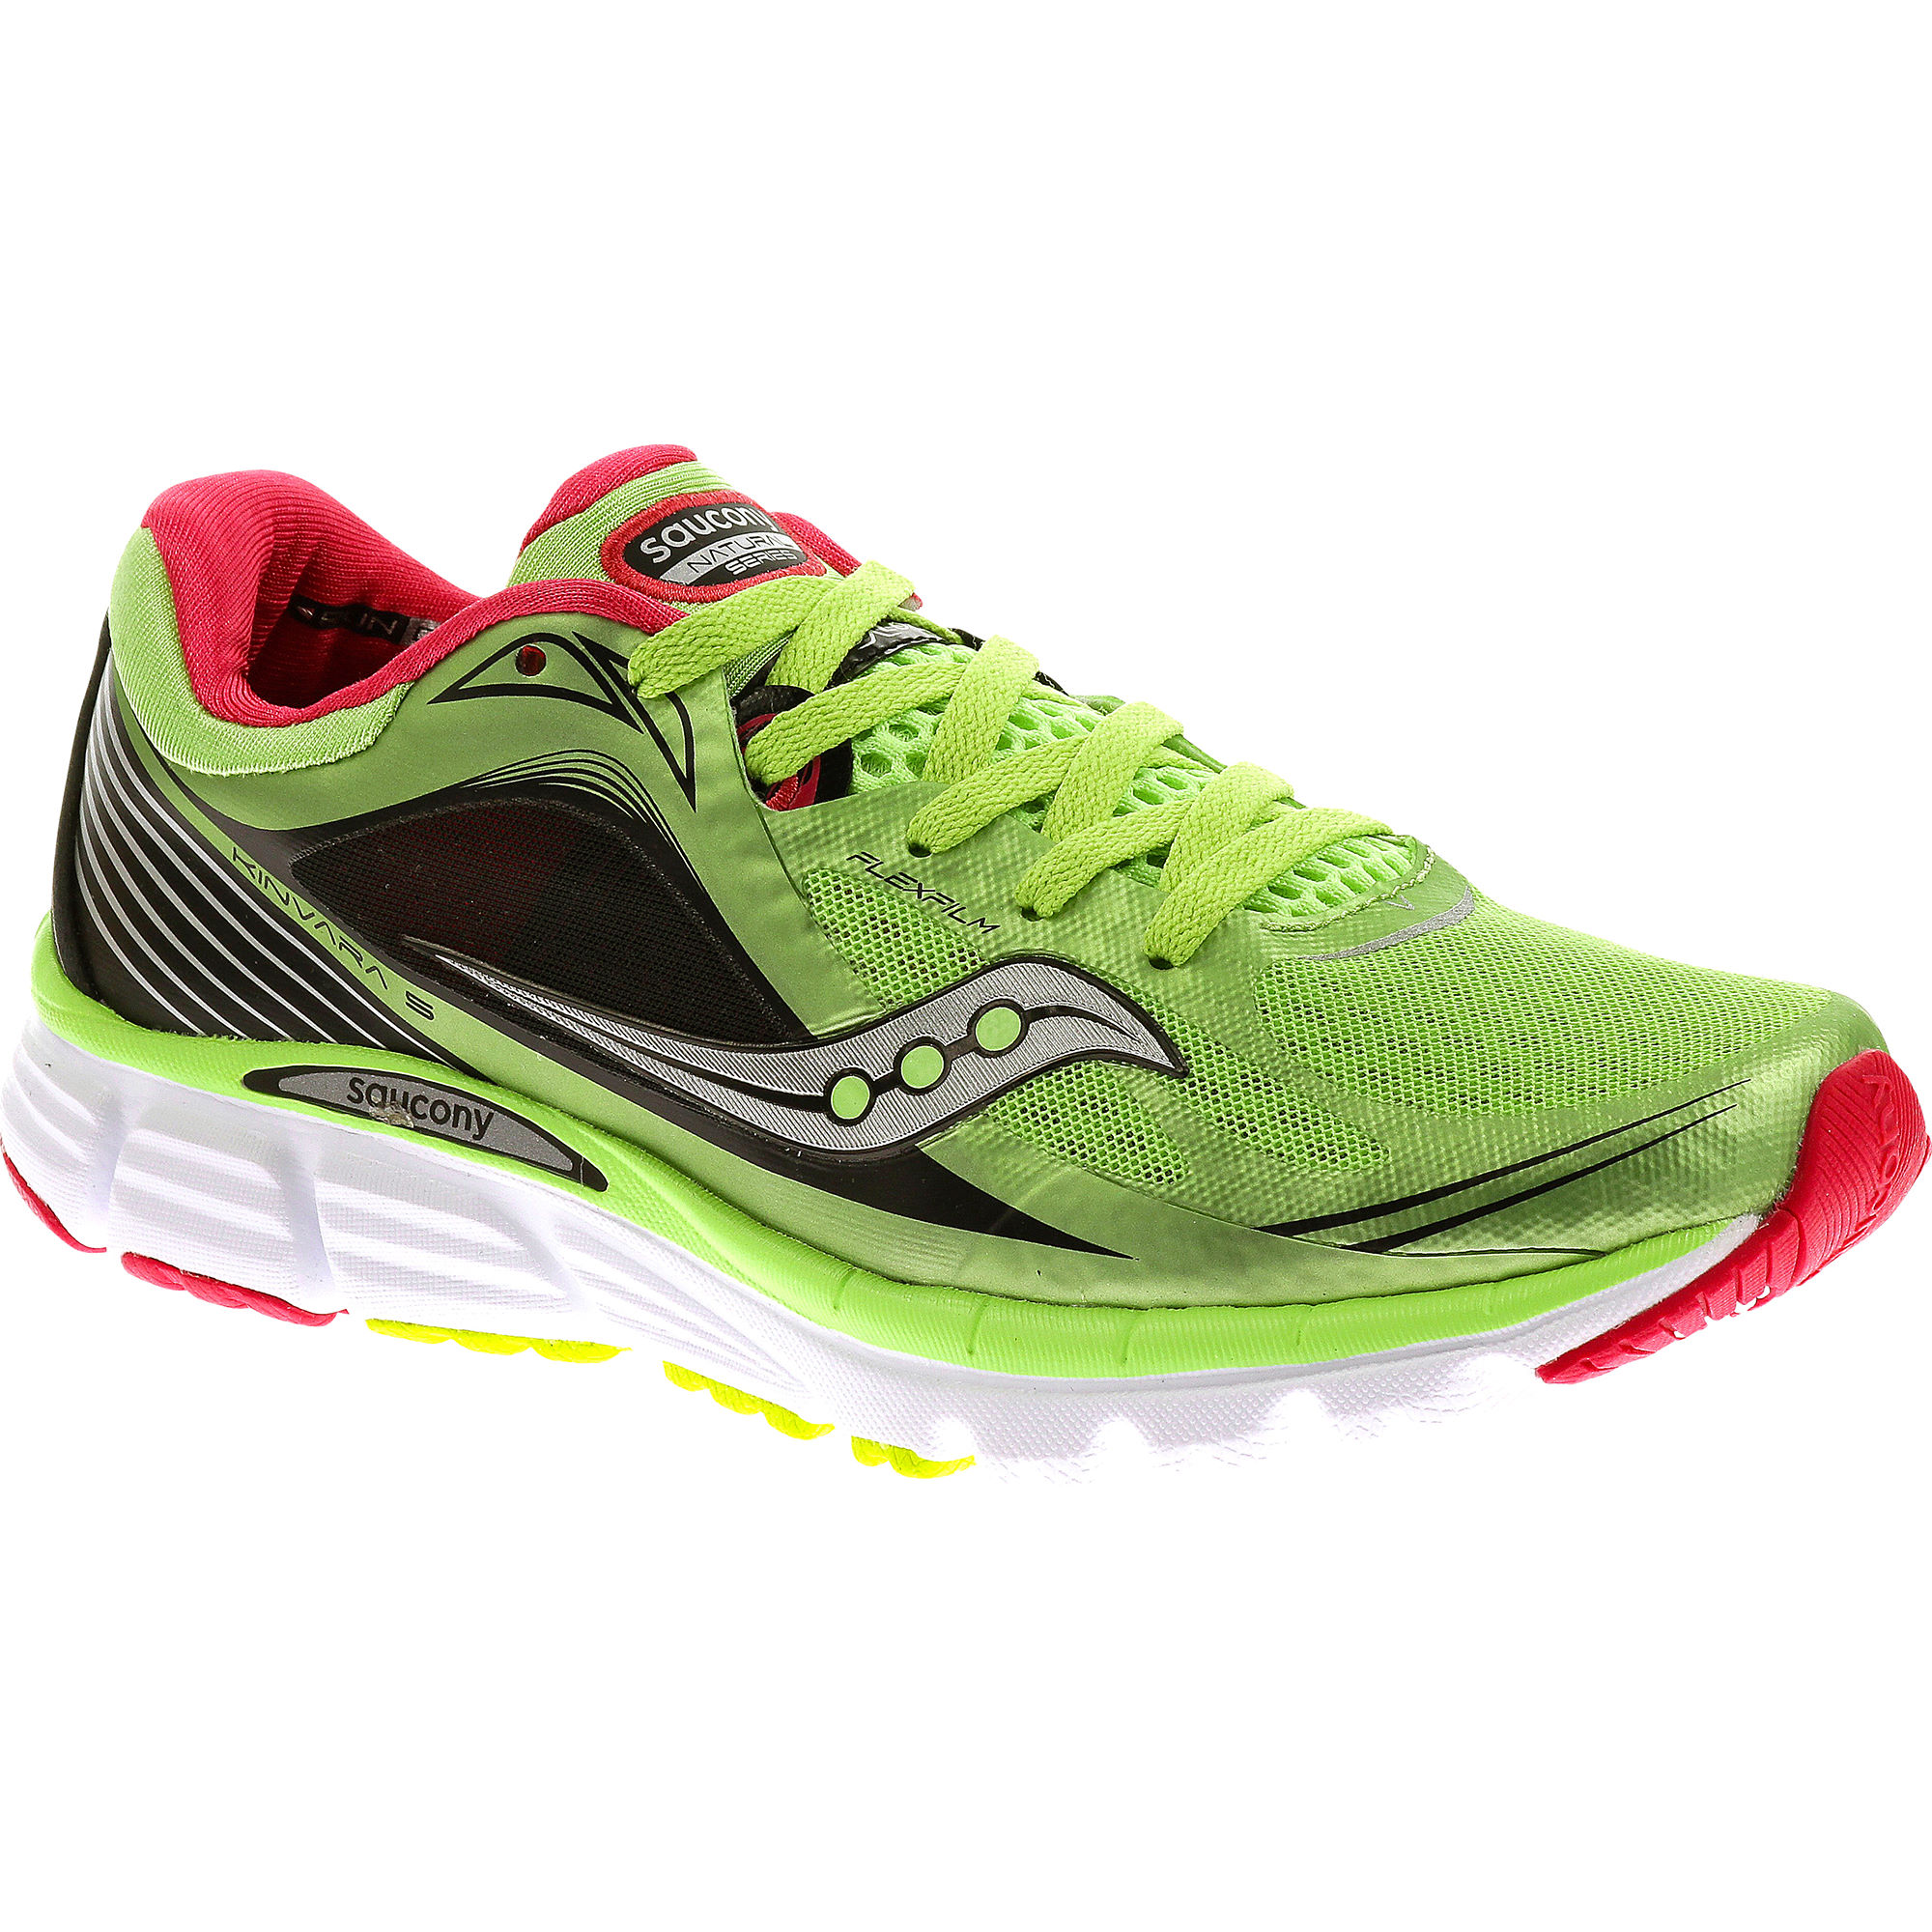 Saucony Kinvara 5 London Limited Edition